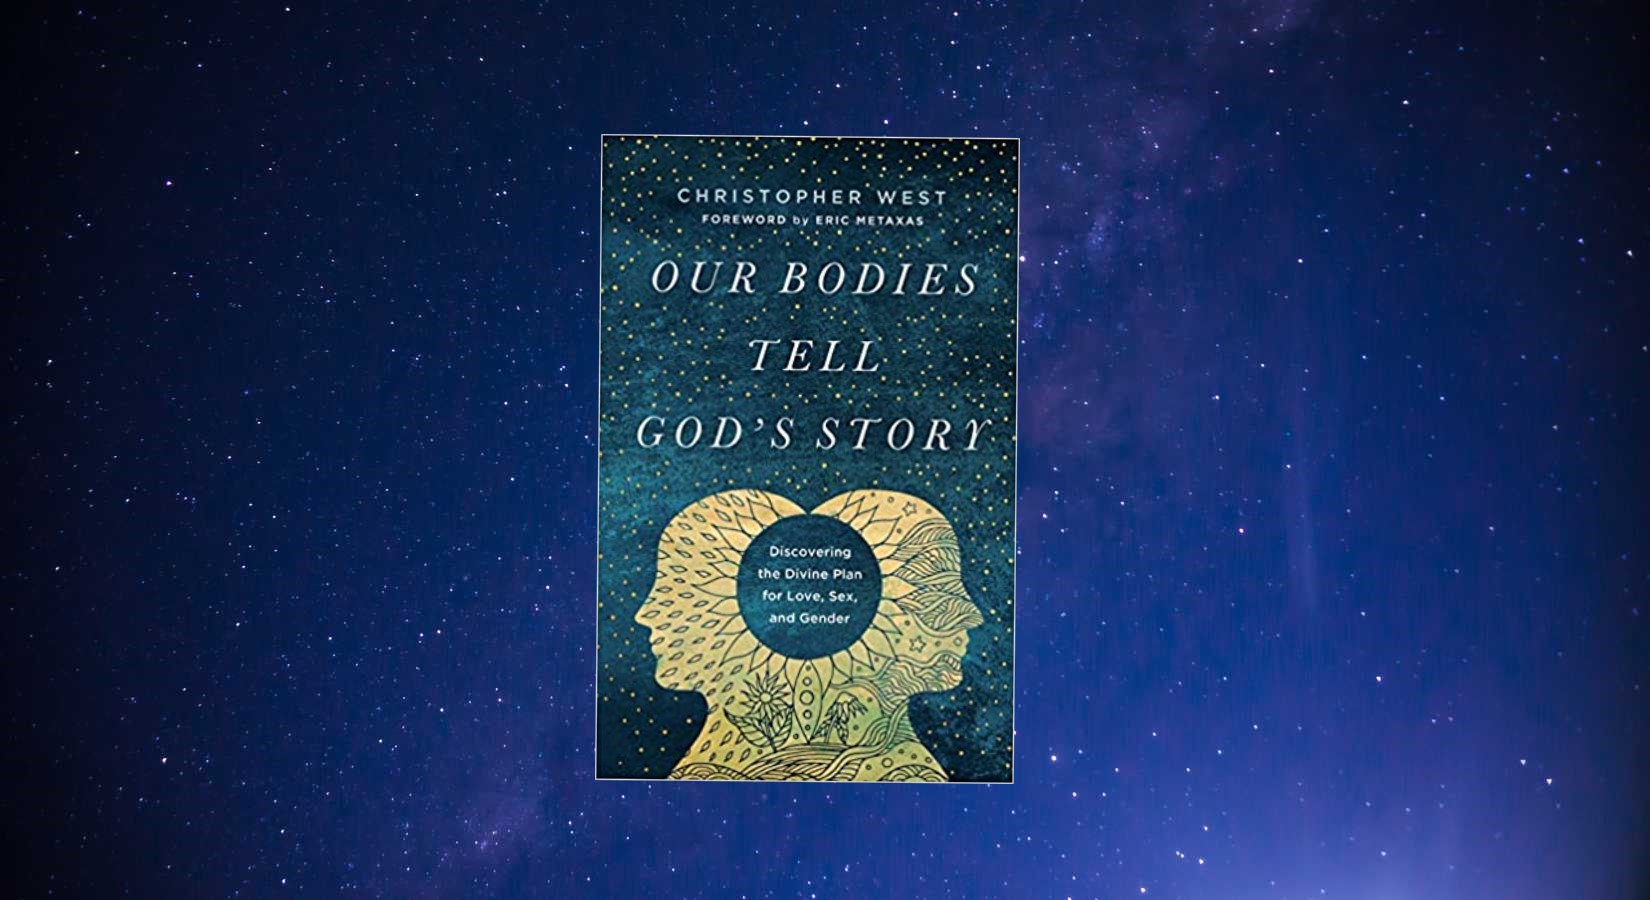 Foto: Bokomslag - Our bodies tell God's story